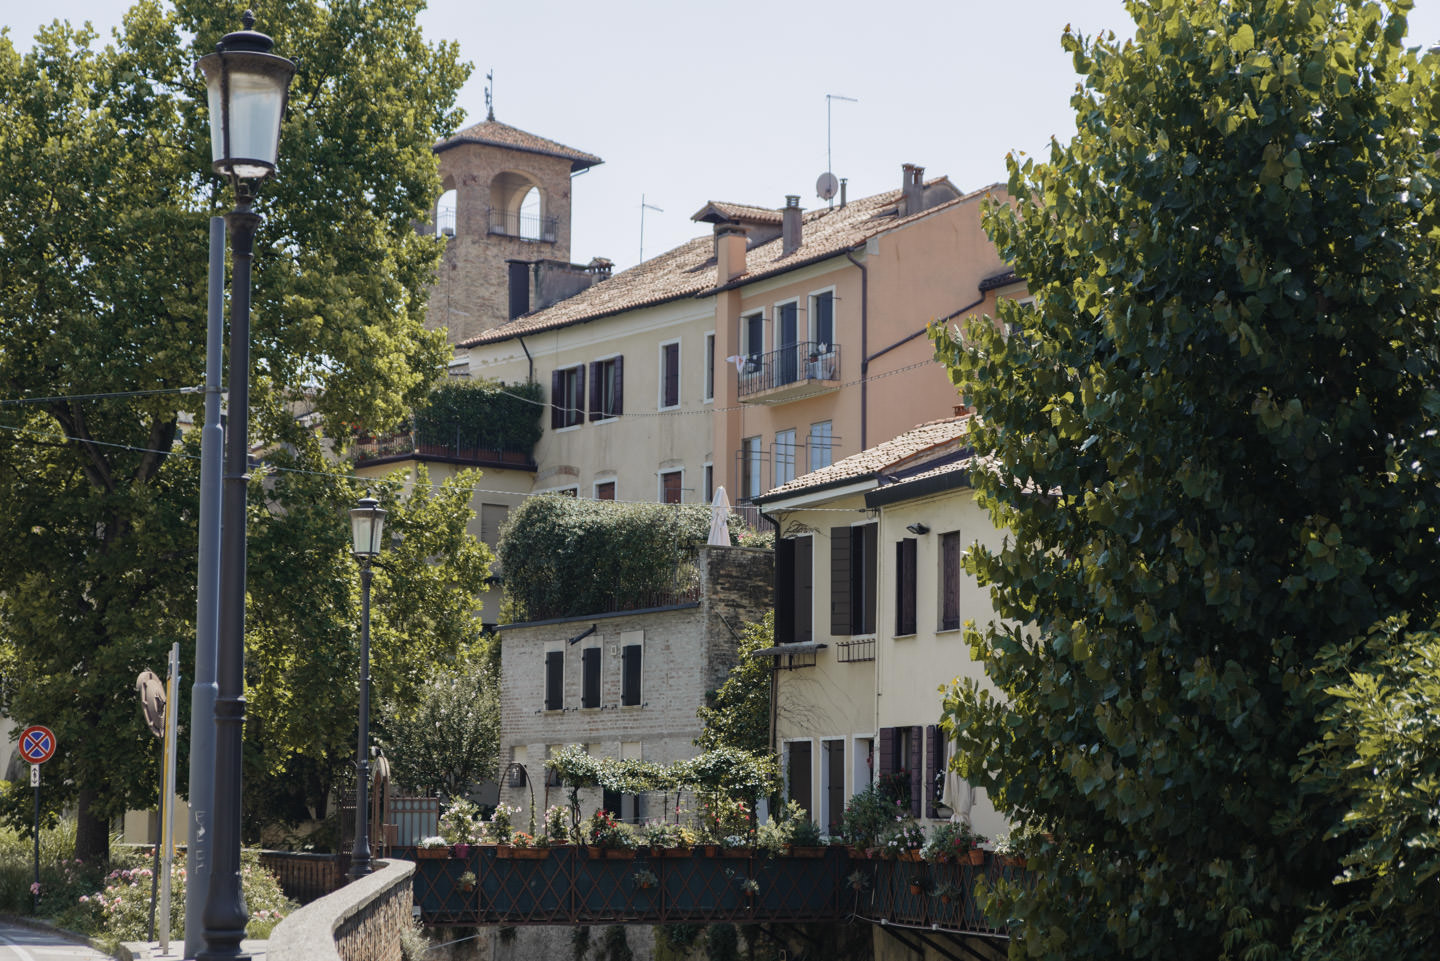 Blog-Mode-And-The-City-Lifestyle-Voyage-Italie-Trieste-Padoue-lac-Come-Verone-6